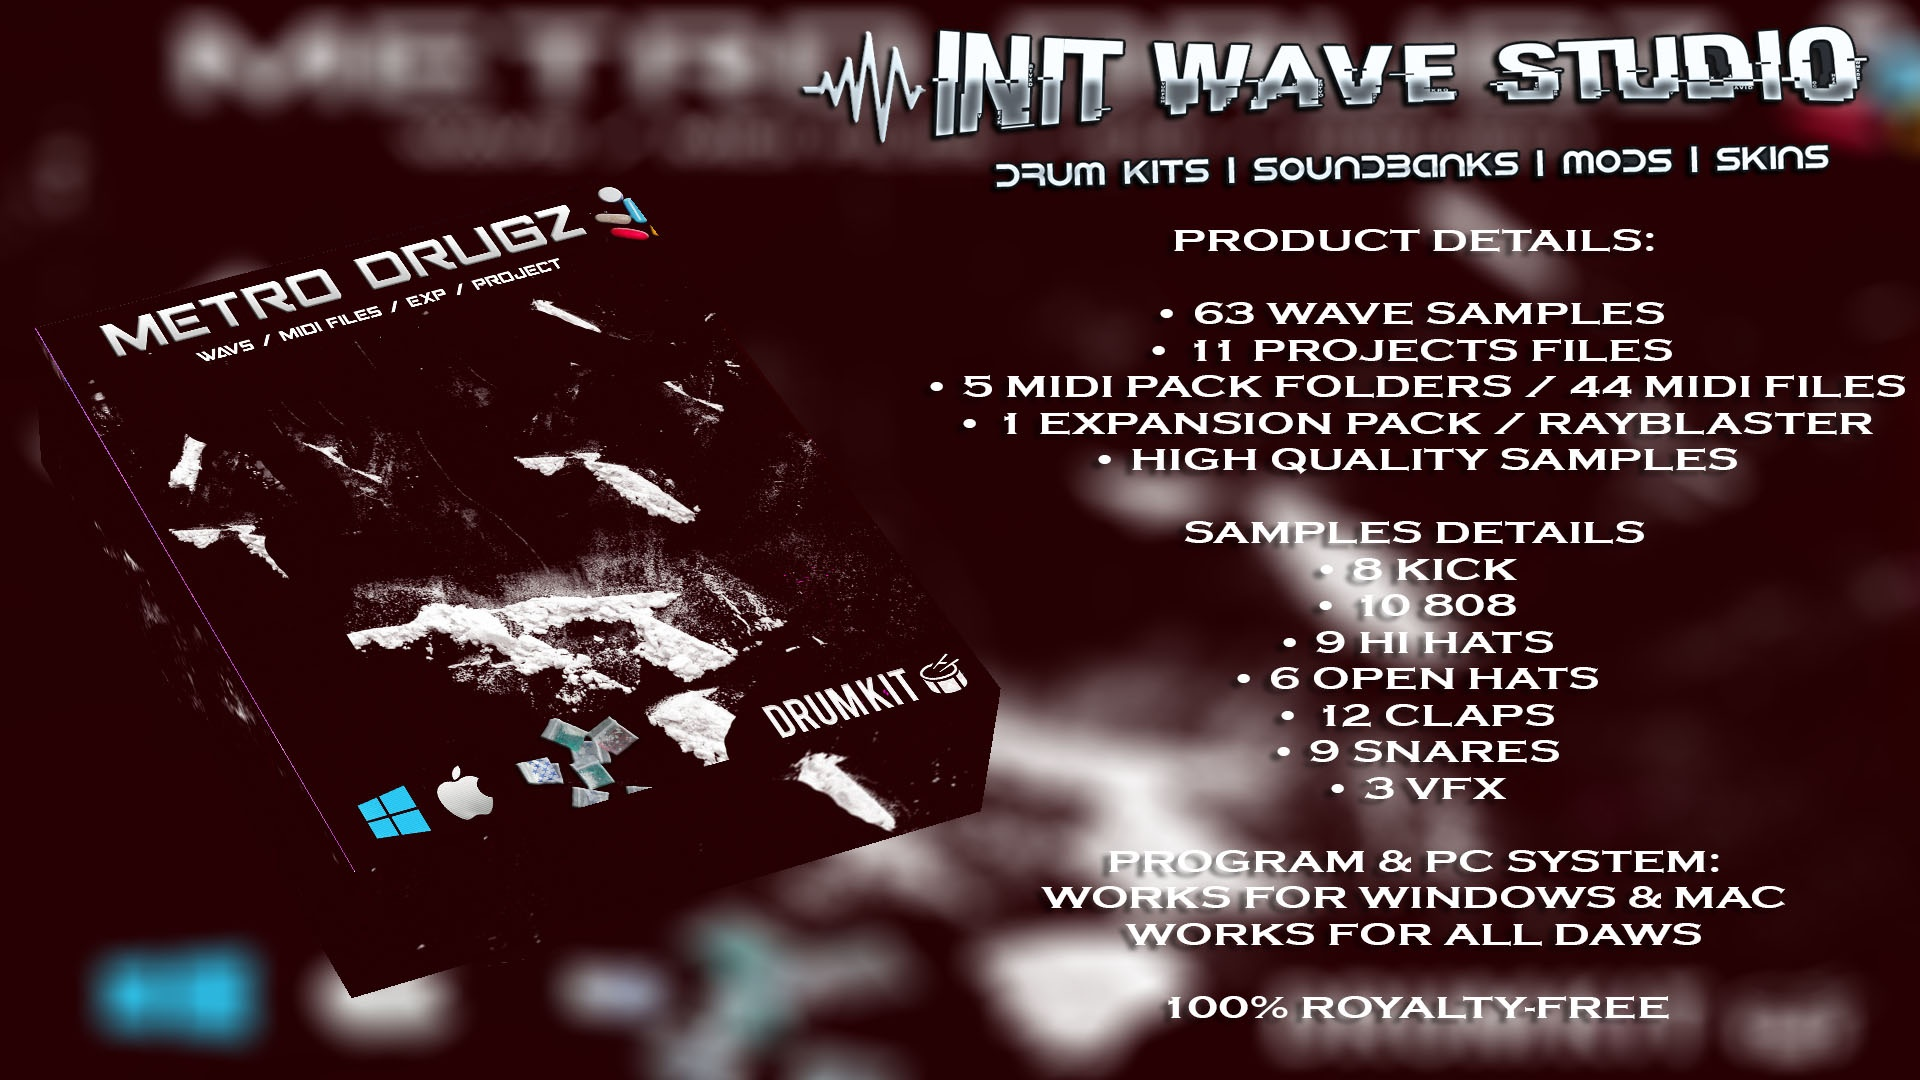 INIT WAVE STUDIO - METRO DRUGZ DRUM KIT VOL.1 (MIDI FILES, LOOPS & FLPS)